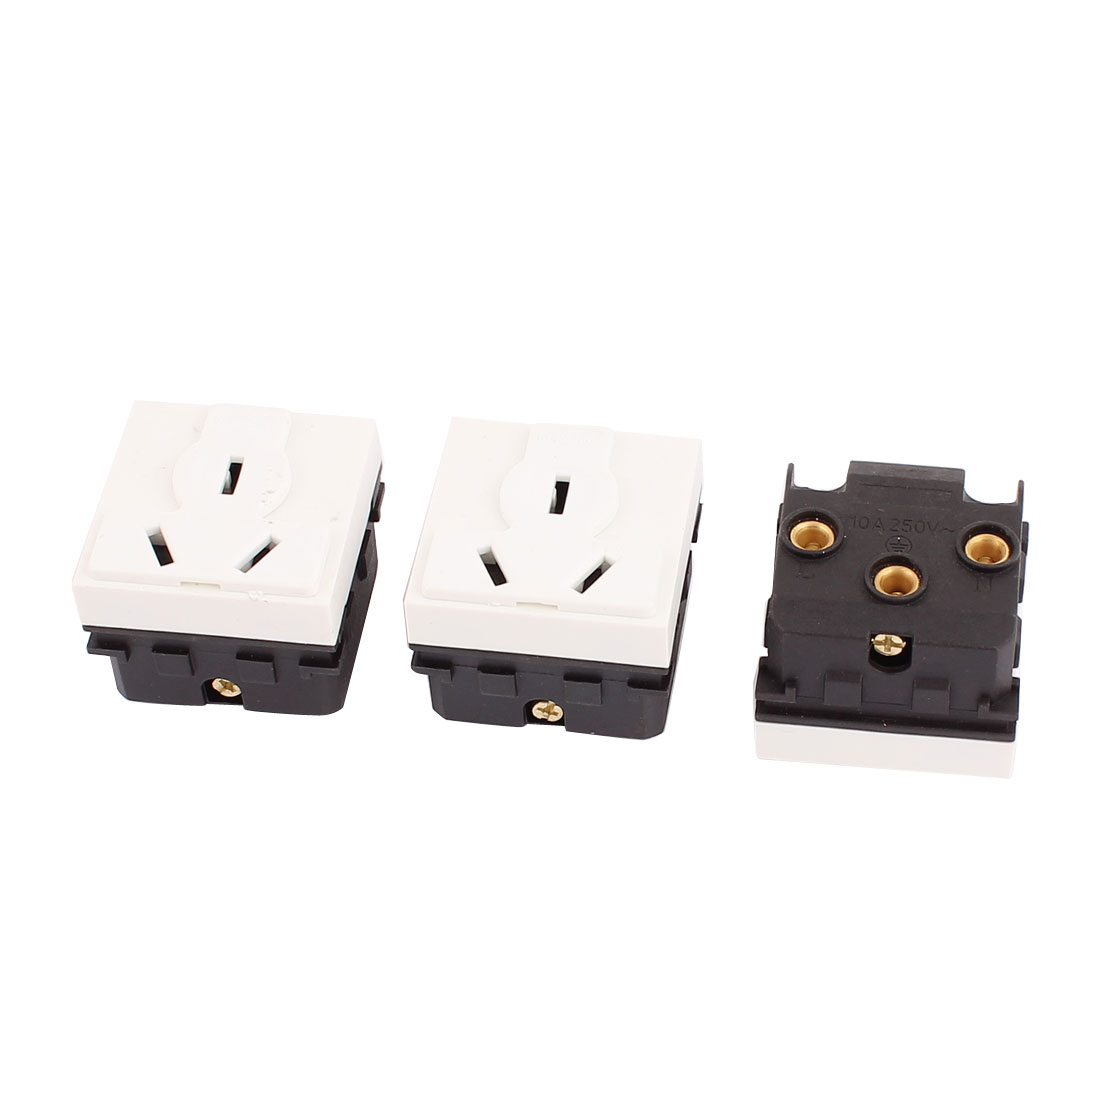 3 Pcs AC250V 10A AU Socket Electrical Modular Power Outlet for 118 Wall Plate Panel